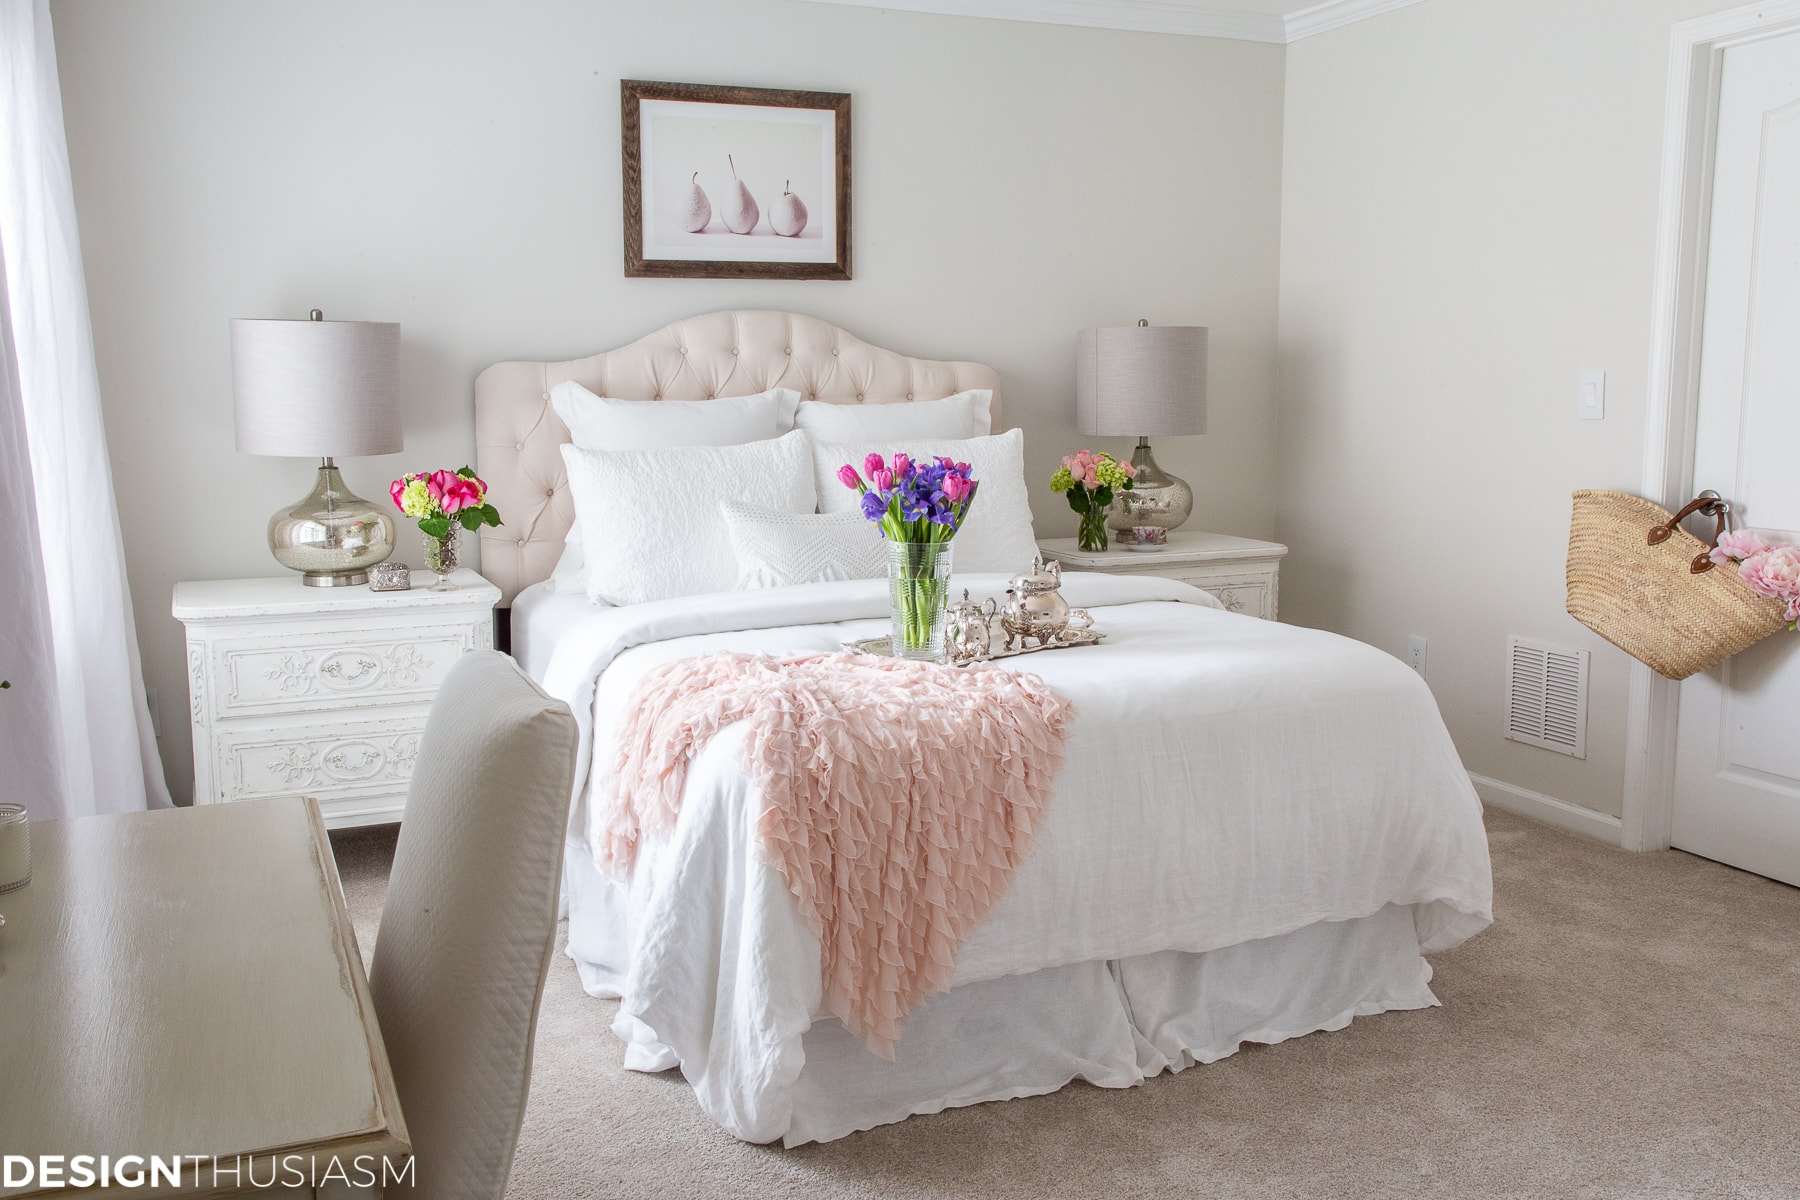 White Bedroom Ideas Adding Pops Of Color To A Serene White Bedroom